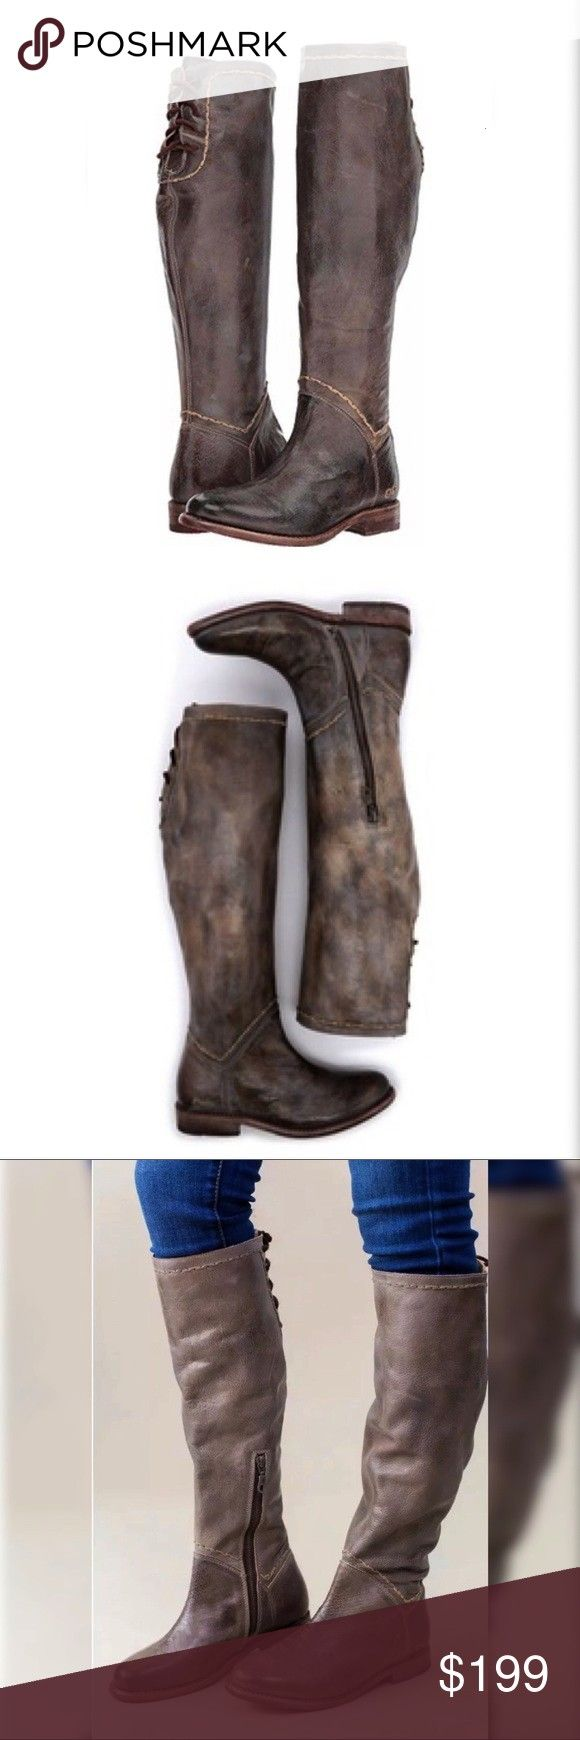 Stu Manchester Boots Taupe Rustic leather Our modern classic MANCHESTER boot with clean lines and flat heel has been a fan favorite for years Th Bed Stu Manchester Boots...